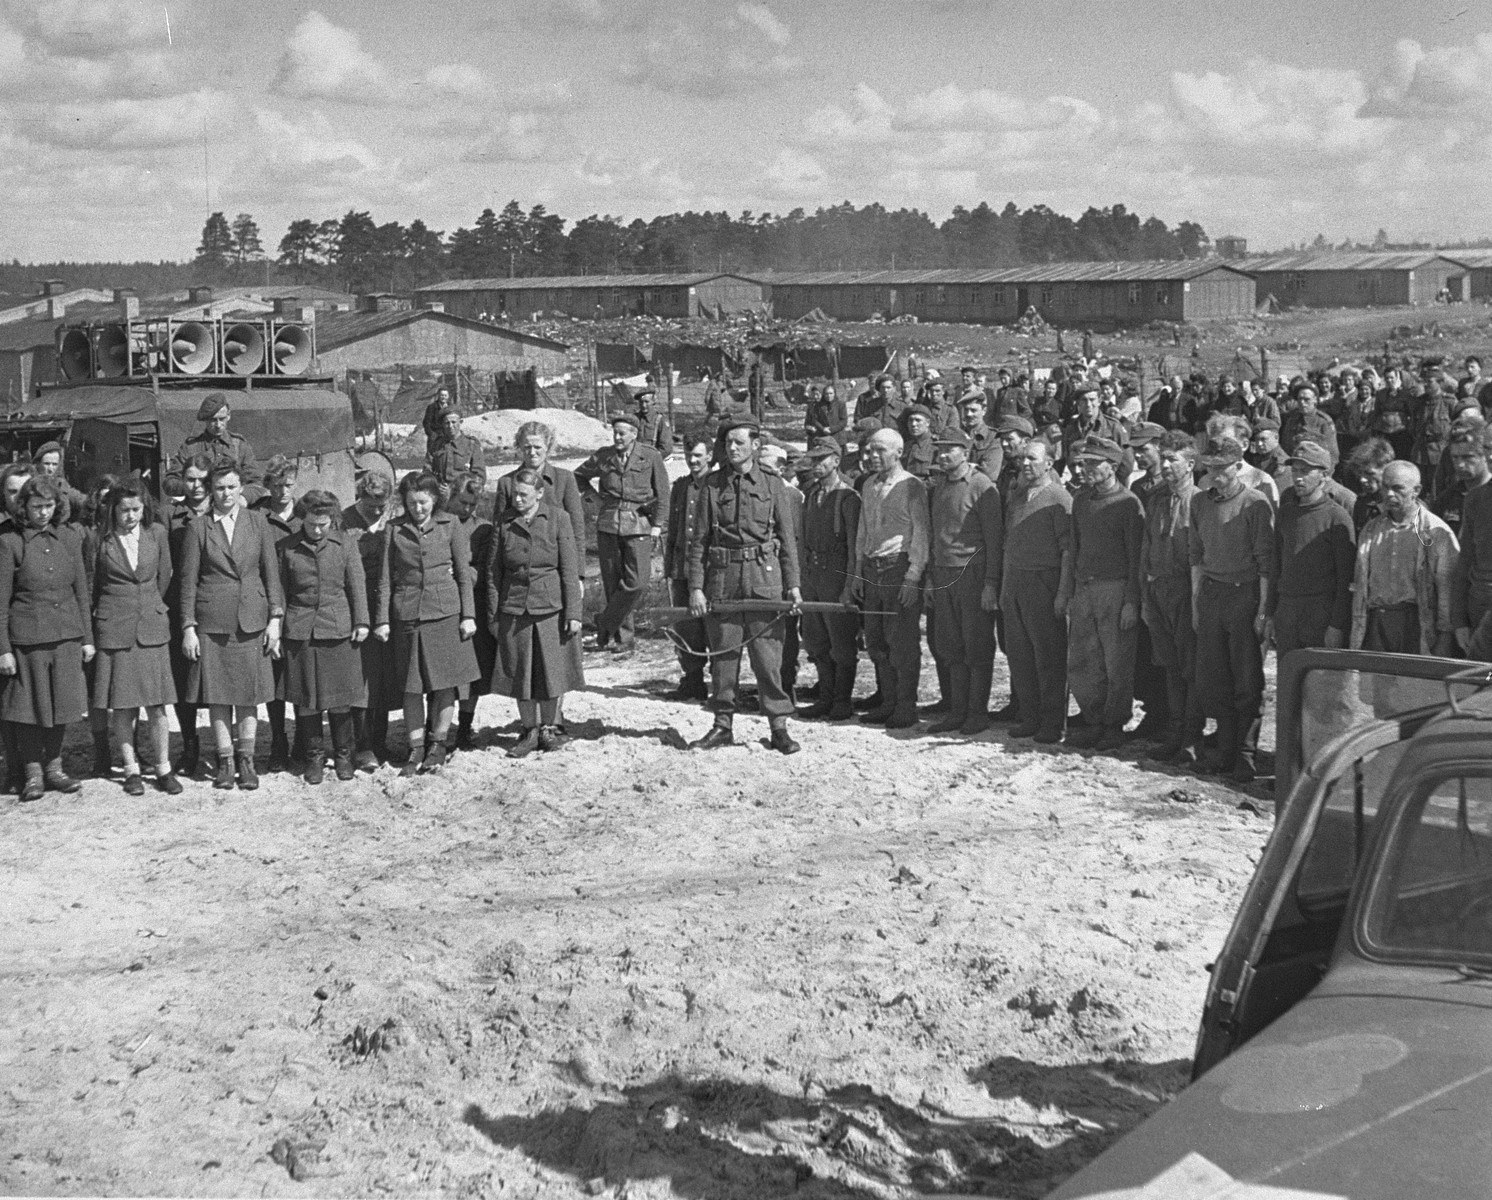 The barracks of Bergen-Belsen concentration camp visible behind them, male and female camp personnel are lined up in front of a mass grave to hear a broadcast denouncing the Germans and their treatment of prisoners.